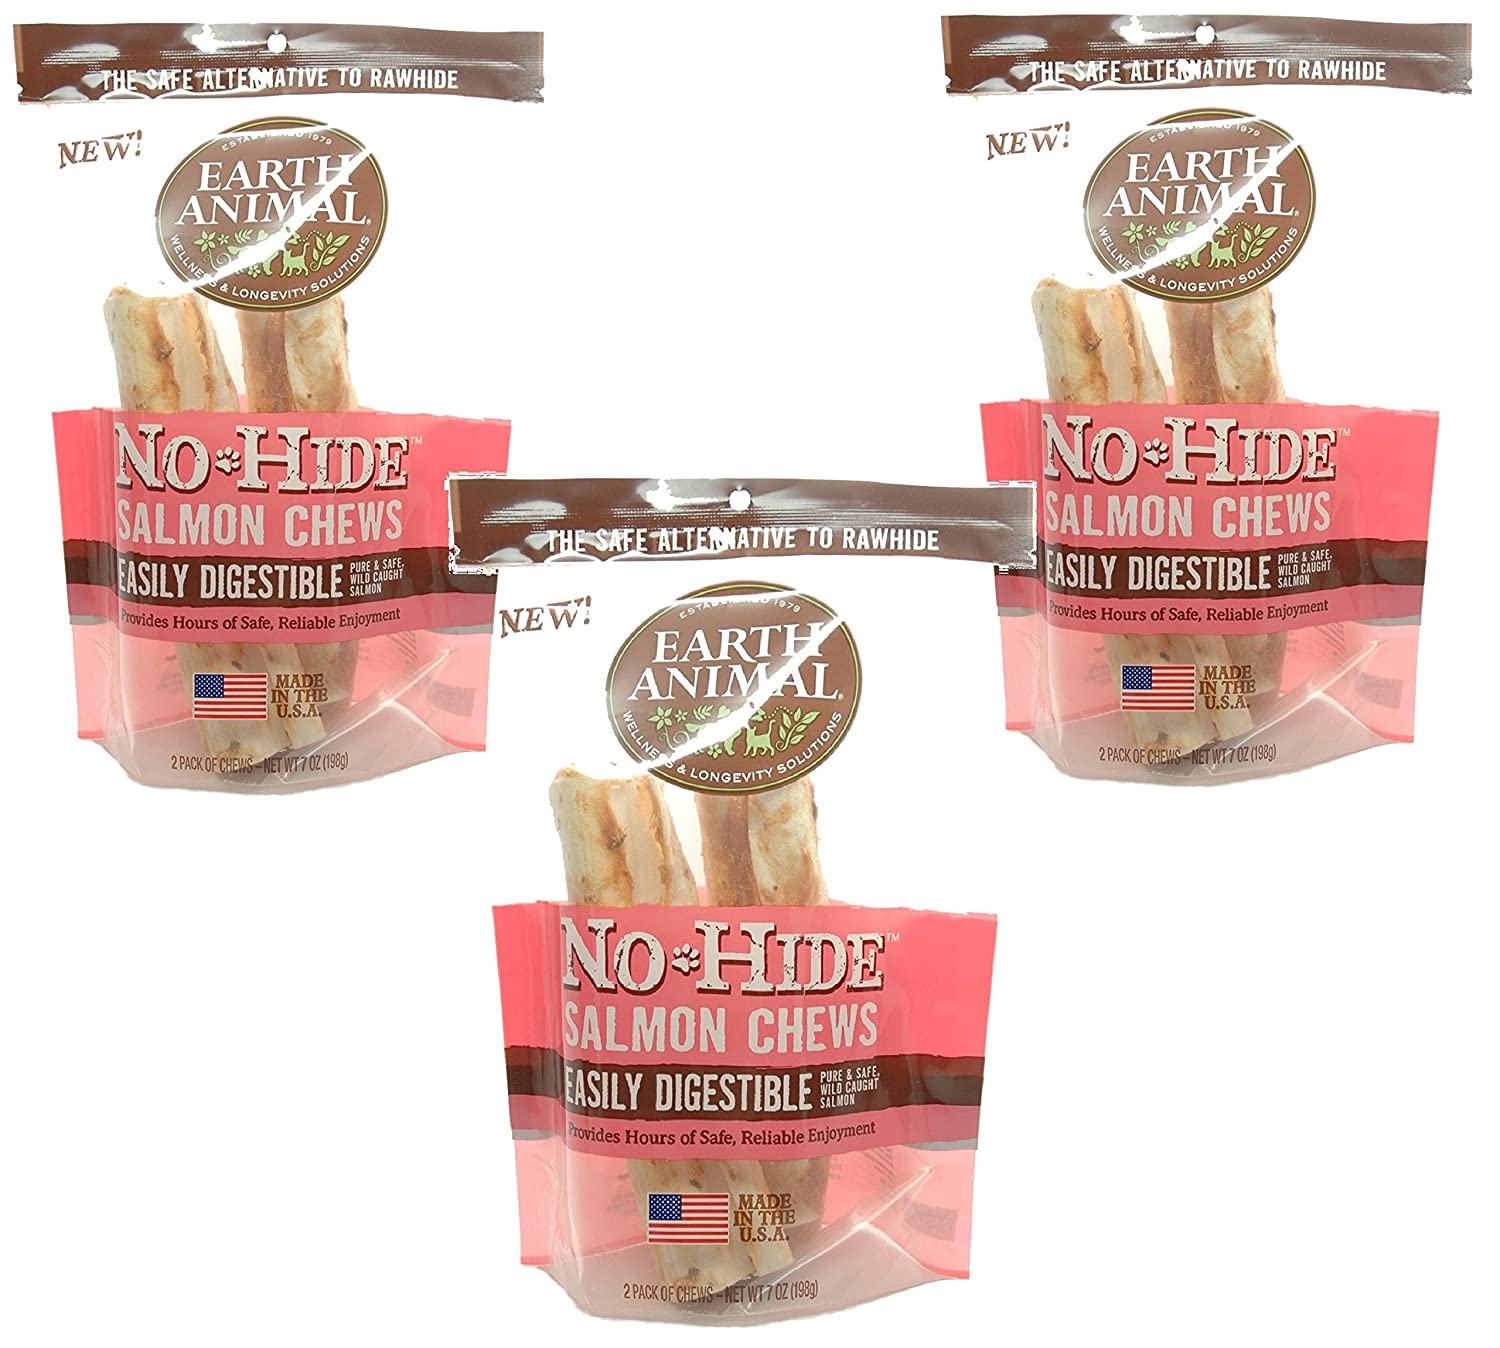 6-Count Earth Animal No-Hide Salmon Chews 7  (3 Packages with 2 Chews Each)